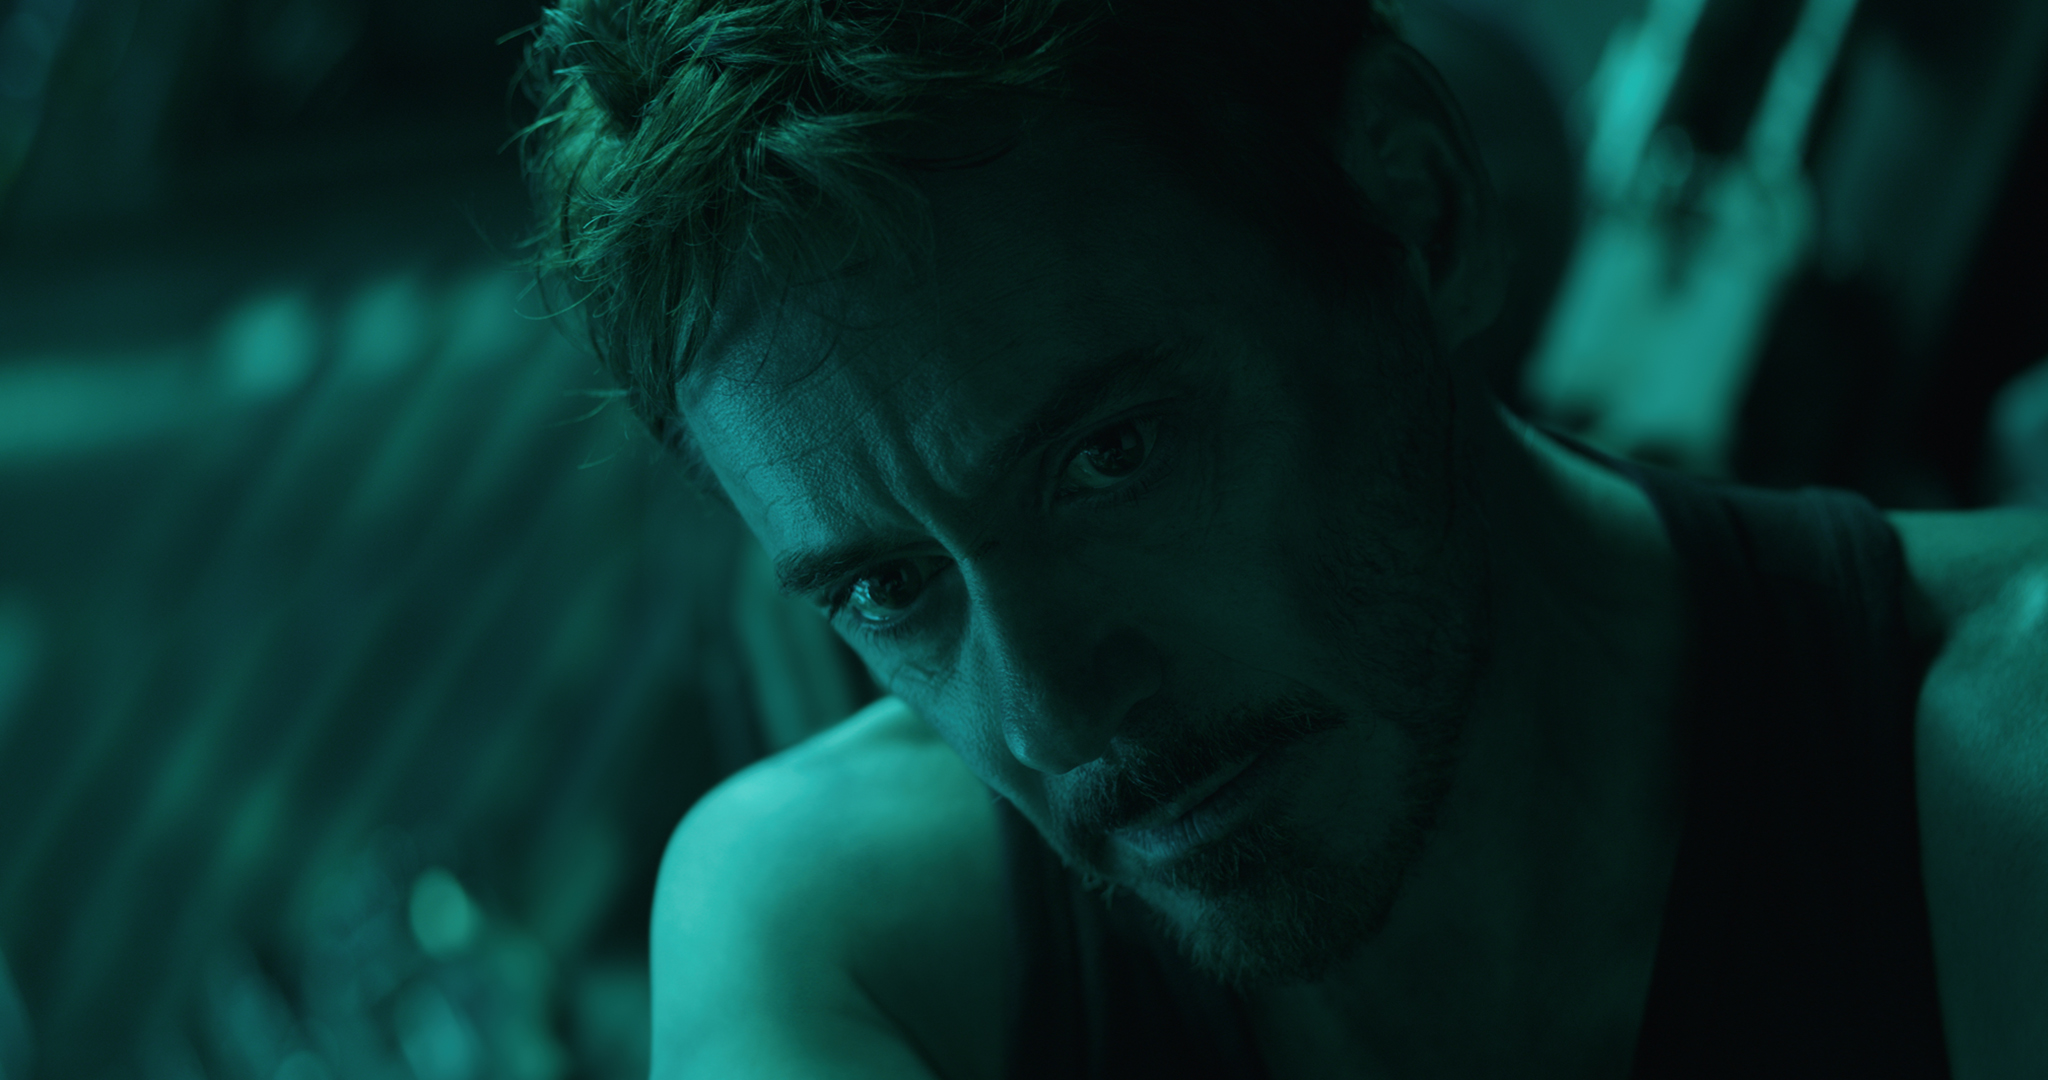 Robert Downey Jr. looking worried in 'Avengers: Endgame'.' (Photo courtesy Marvel/Disney)